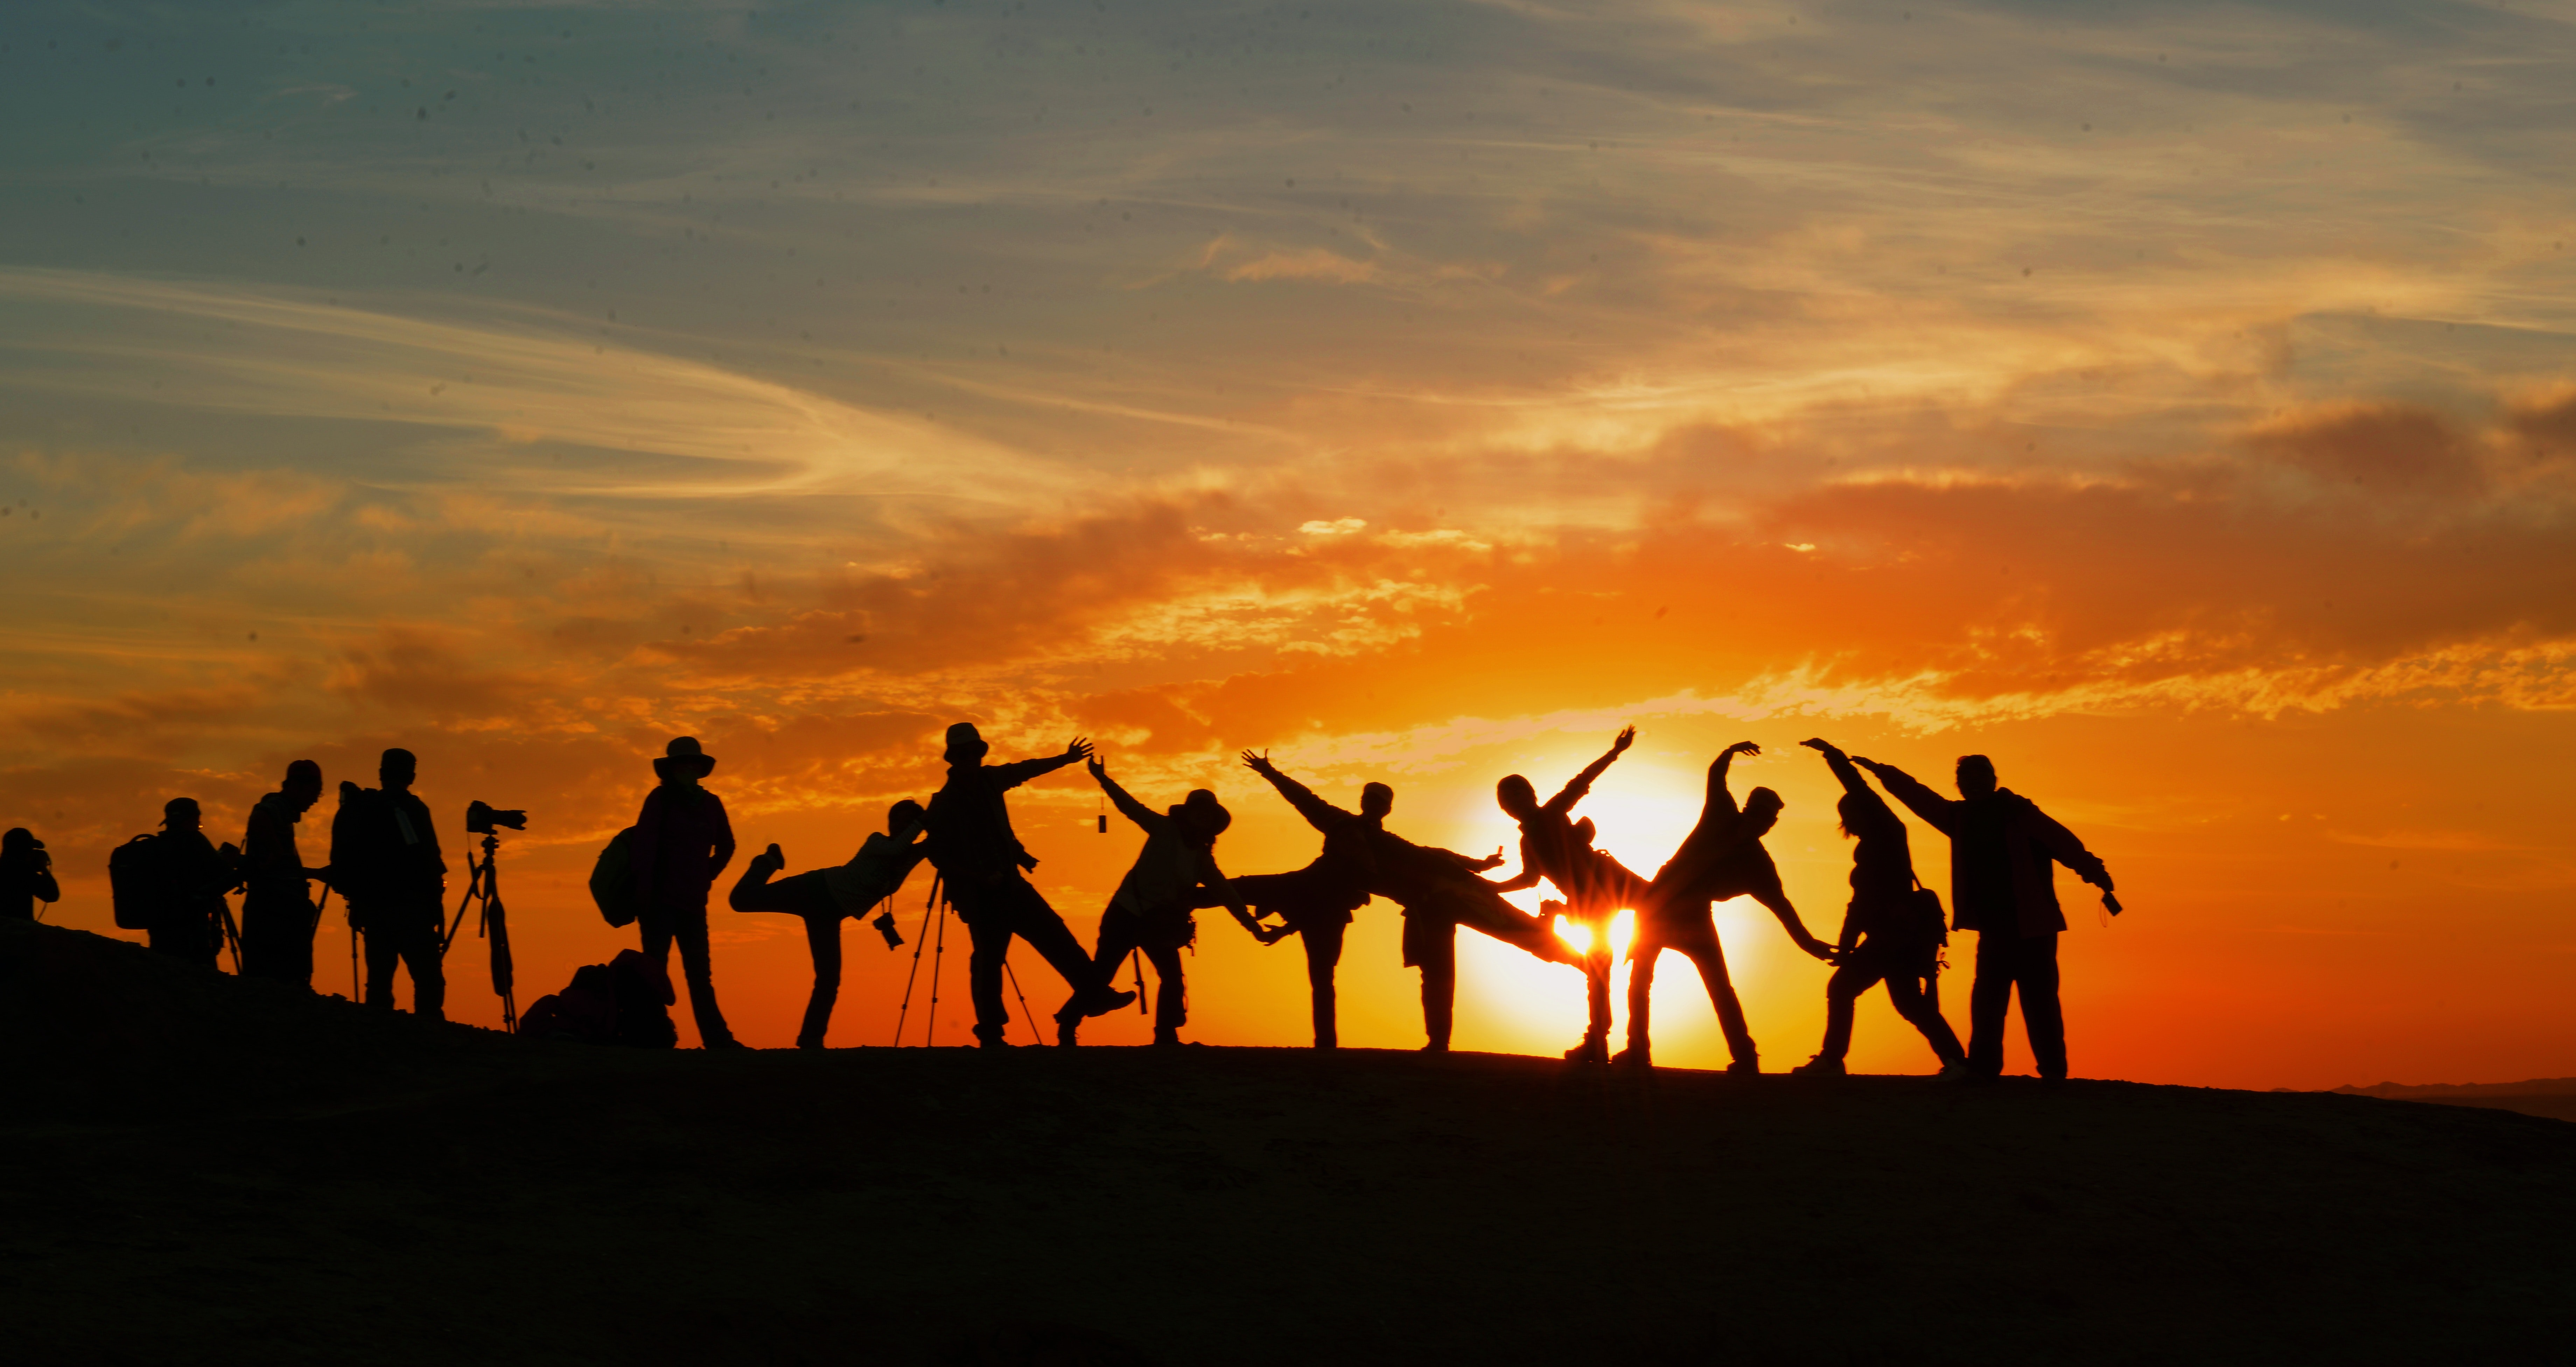 Individuals posing for photo during sunset